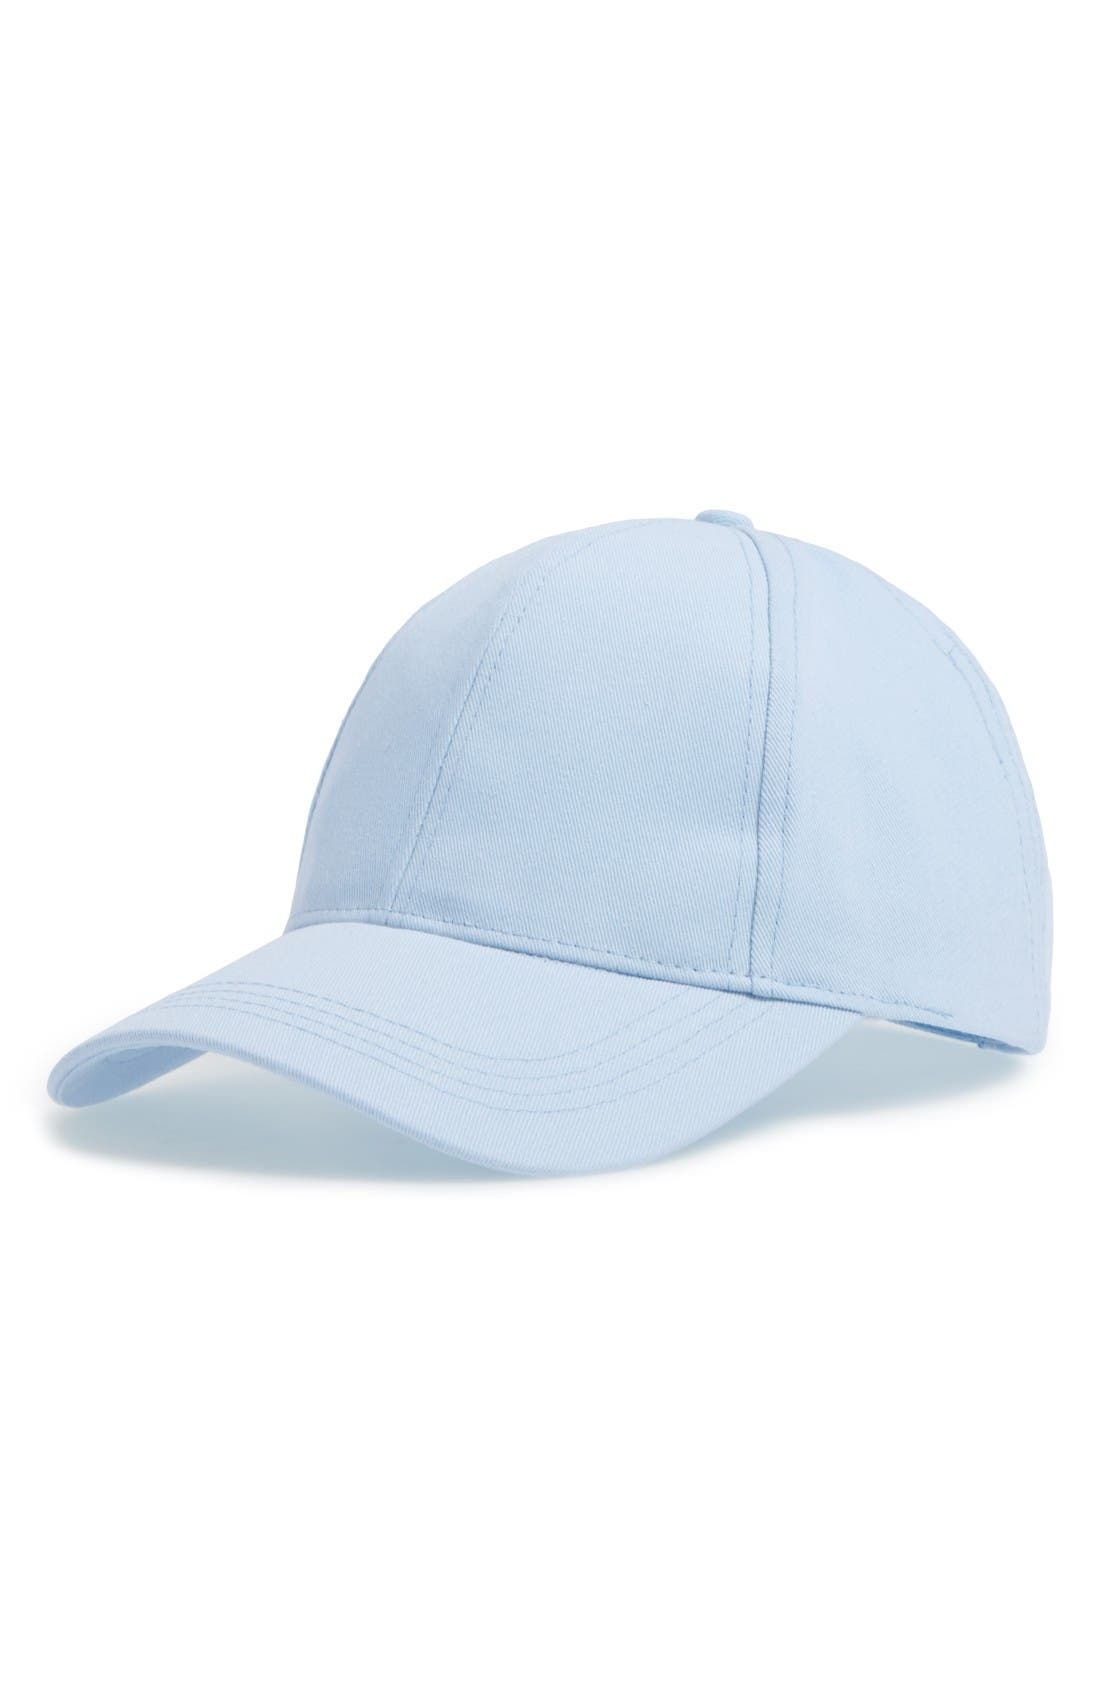 Main Image - BP. Cotton Ball Cap